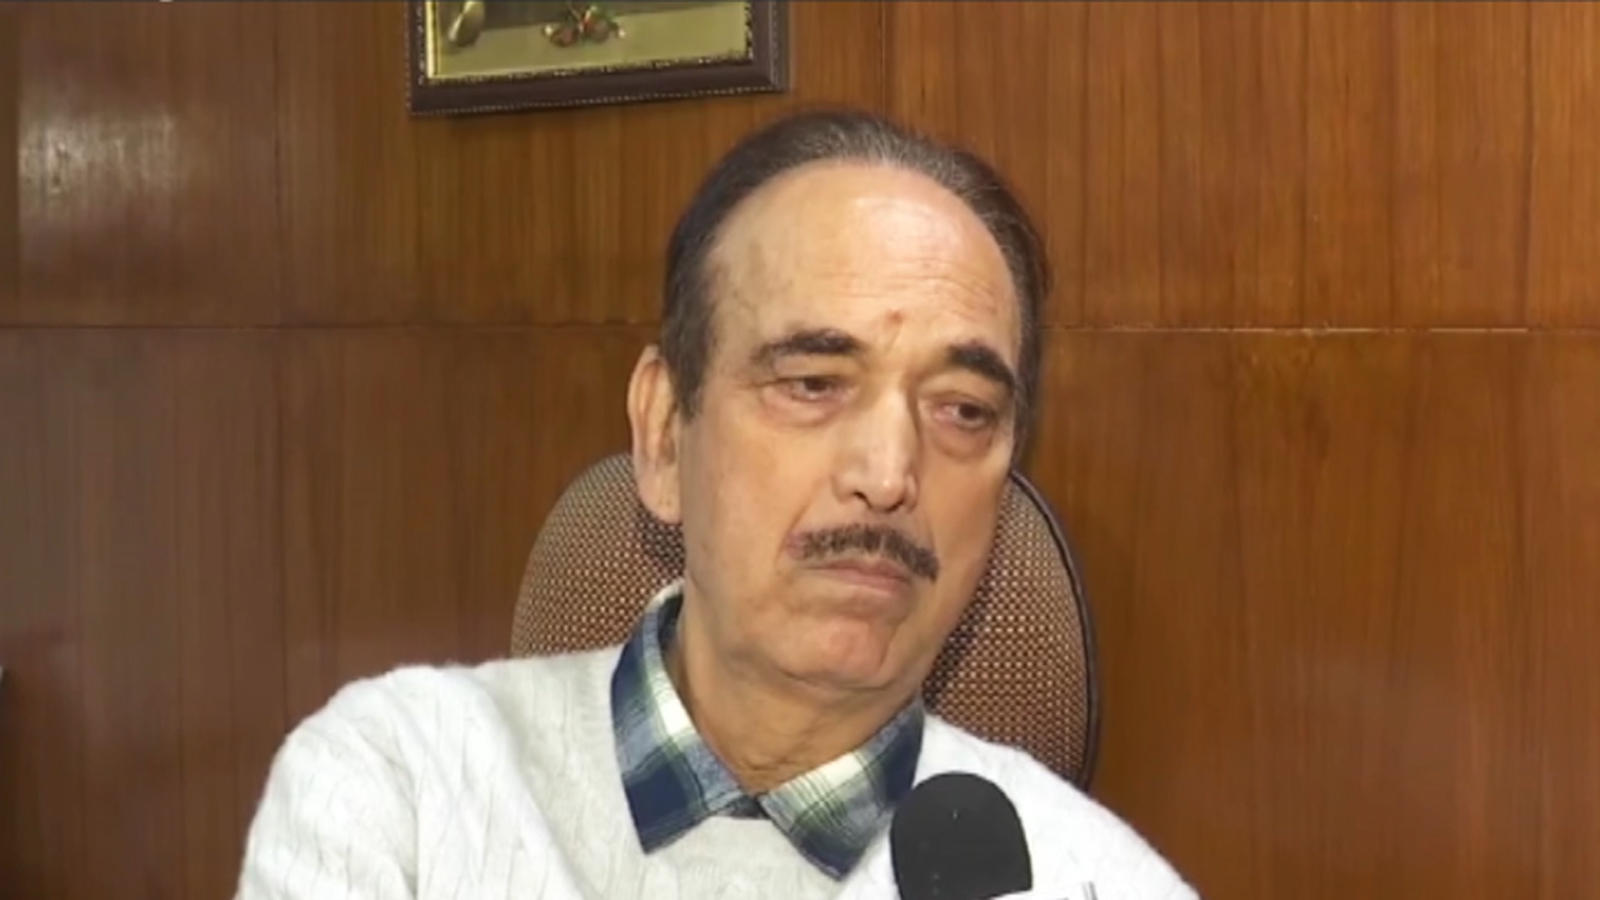 third-attempt-by-centre-to-misguide-people-ghulam-nabi-azad-on-union-ministers-visit-to-jk